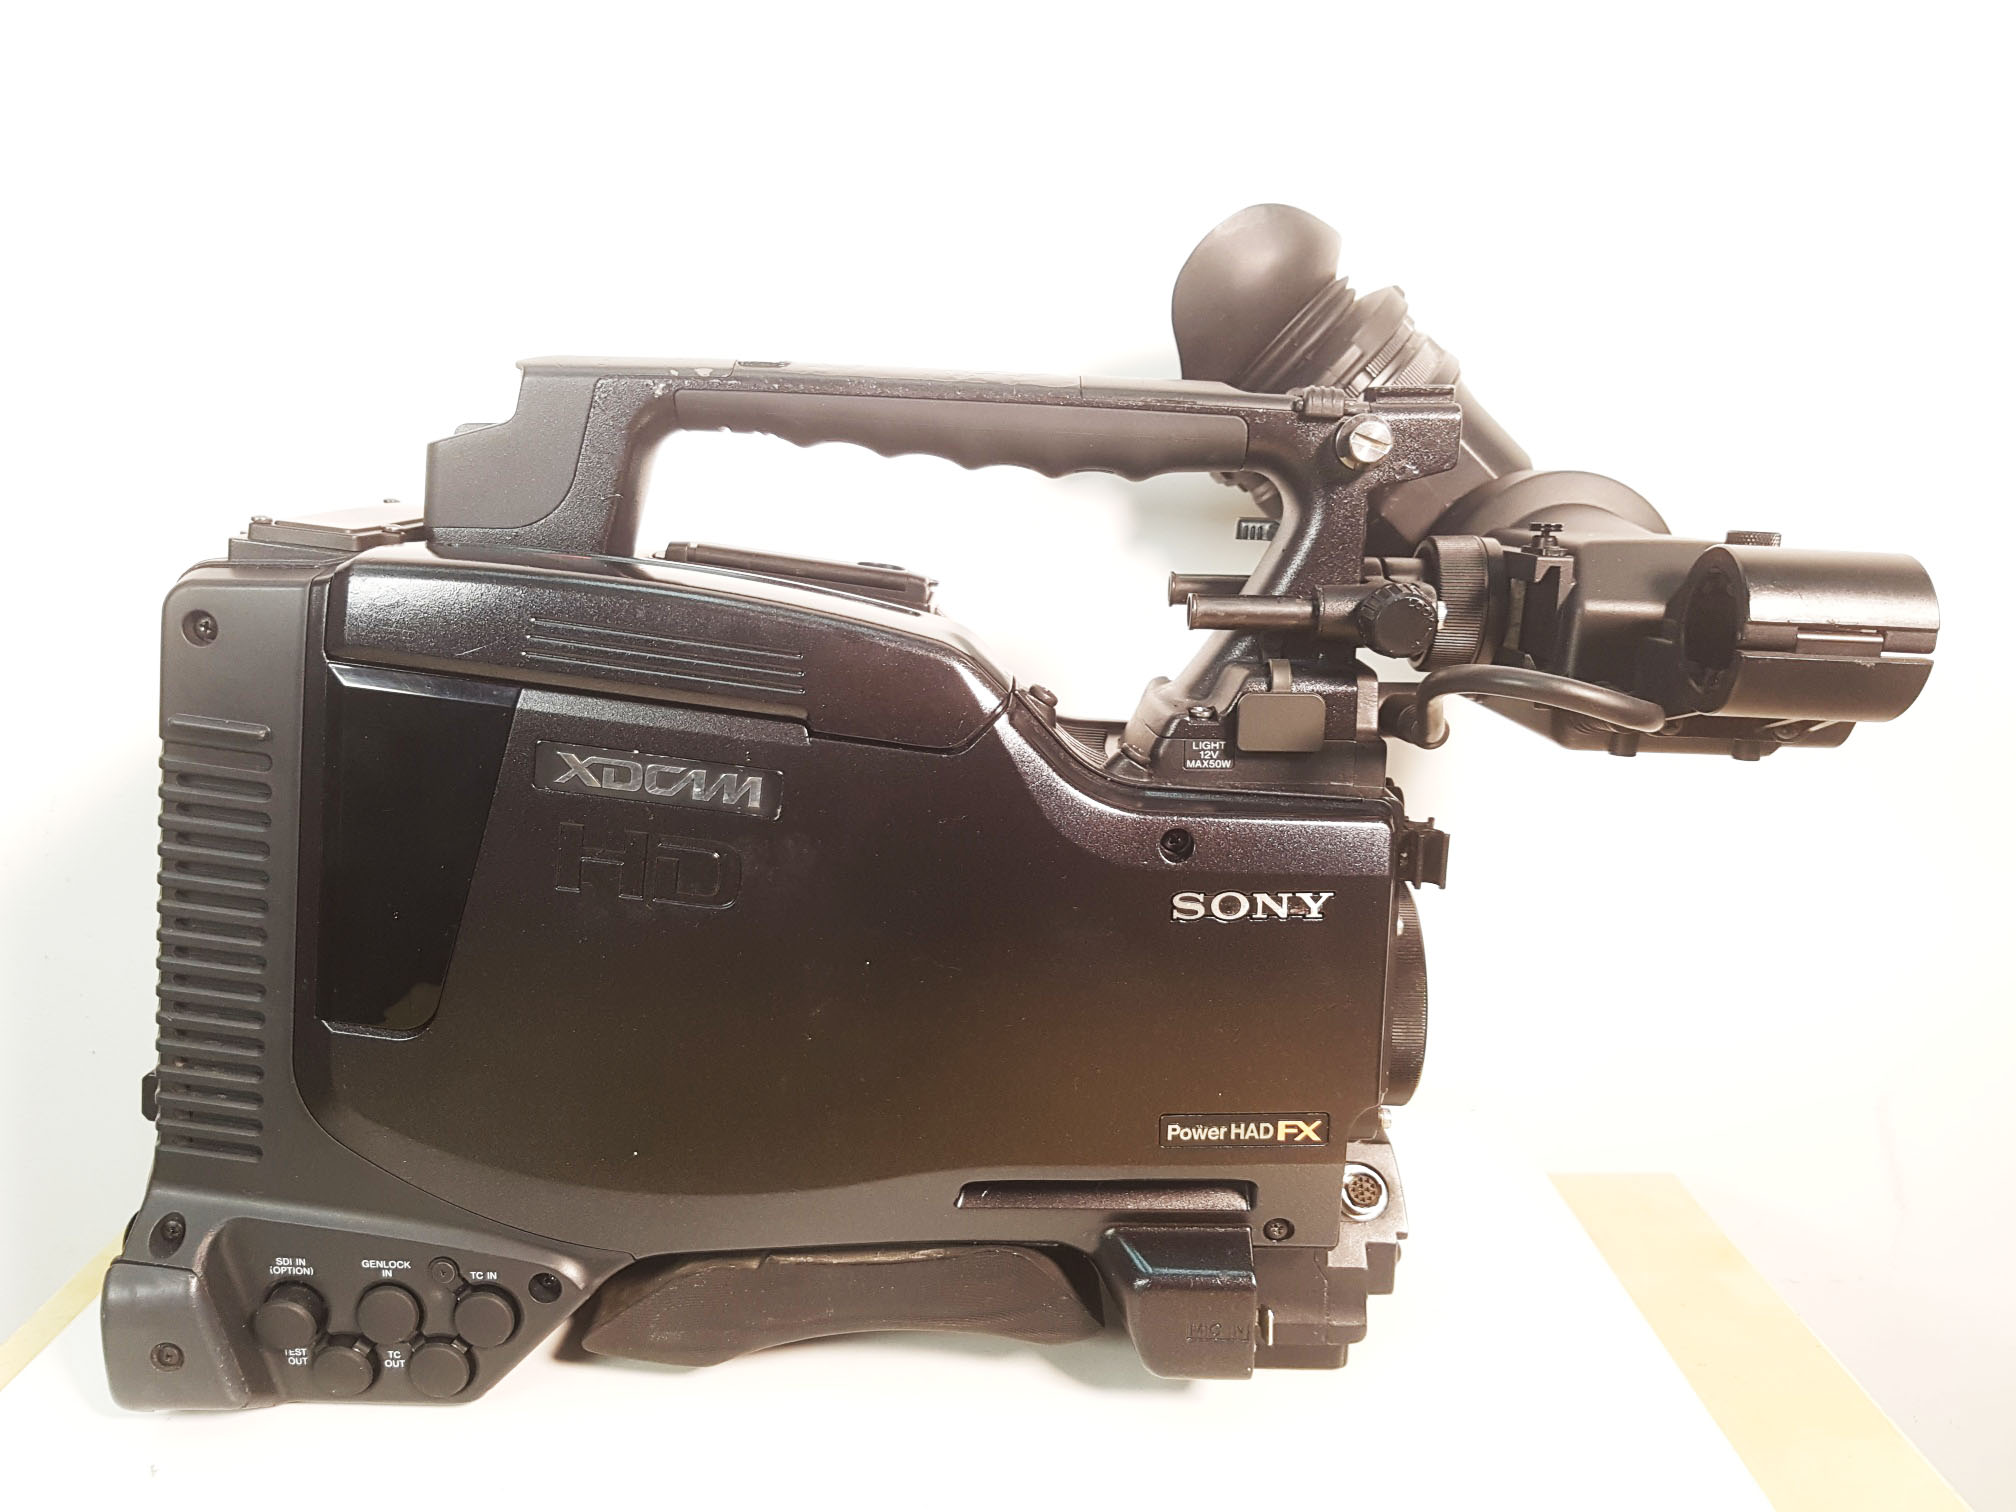 SONY PDW-700 + HDVF-200 - Image #1